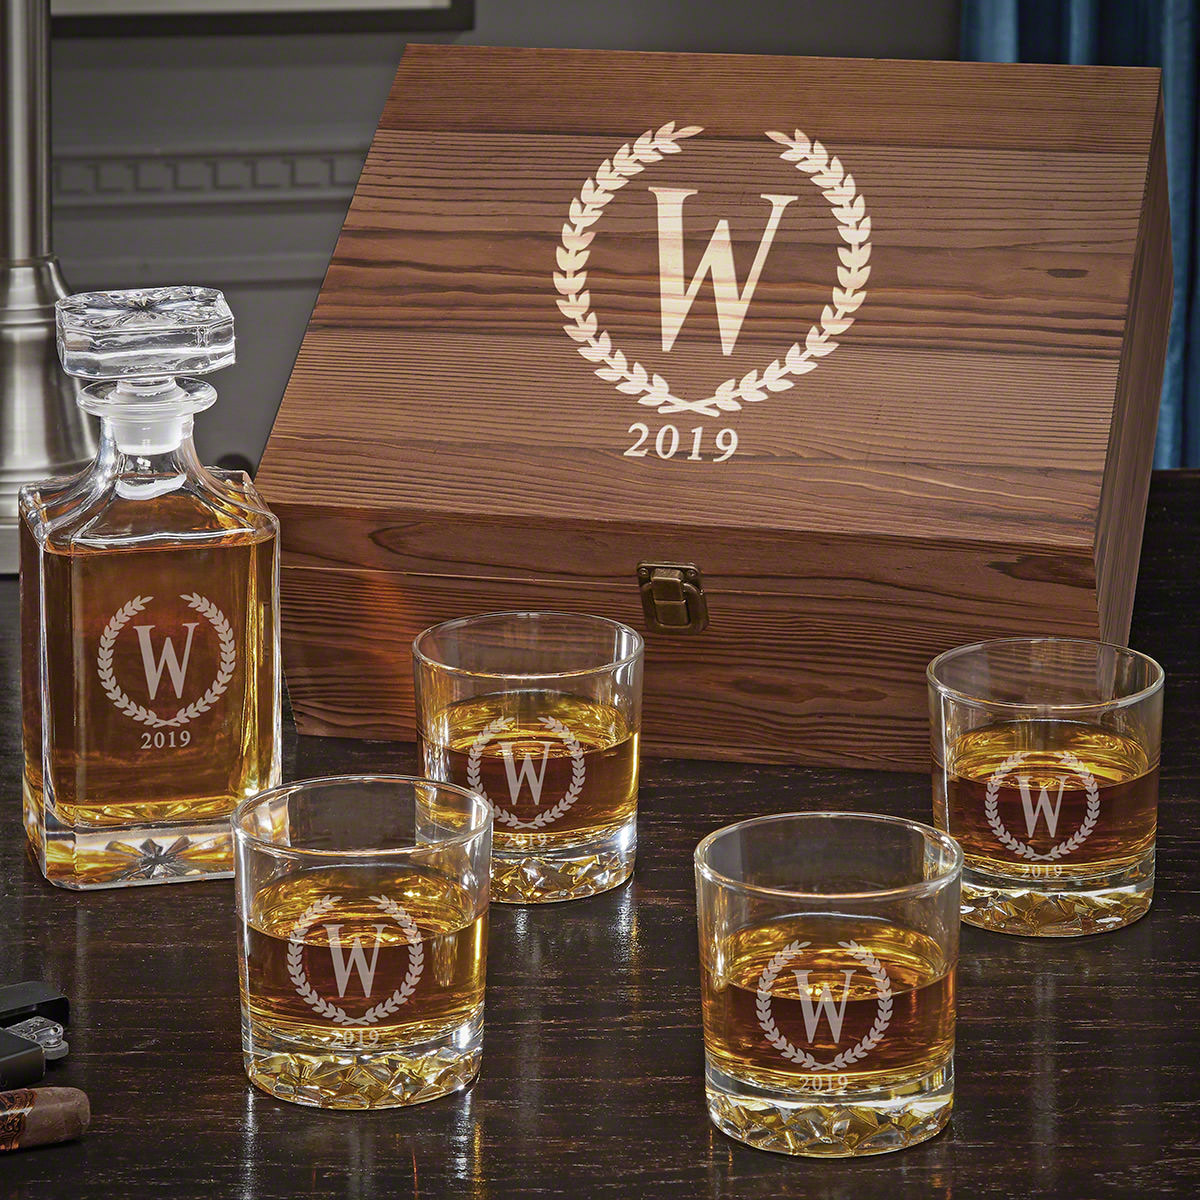 Statesman Personalized Carson Decanter Whiskey Gift Set with Fairbanks Glasses